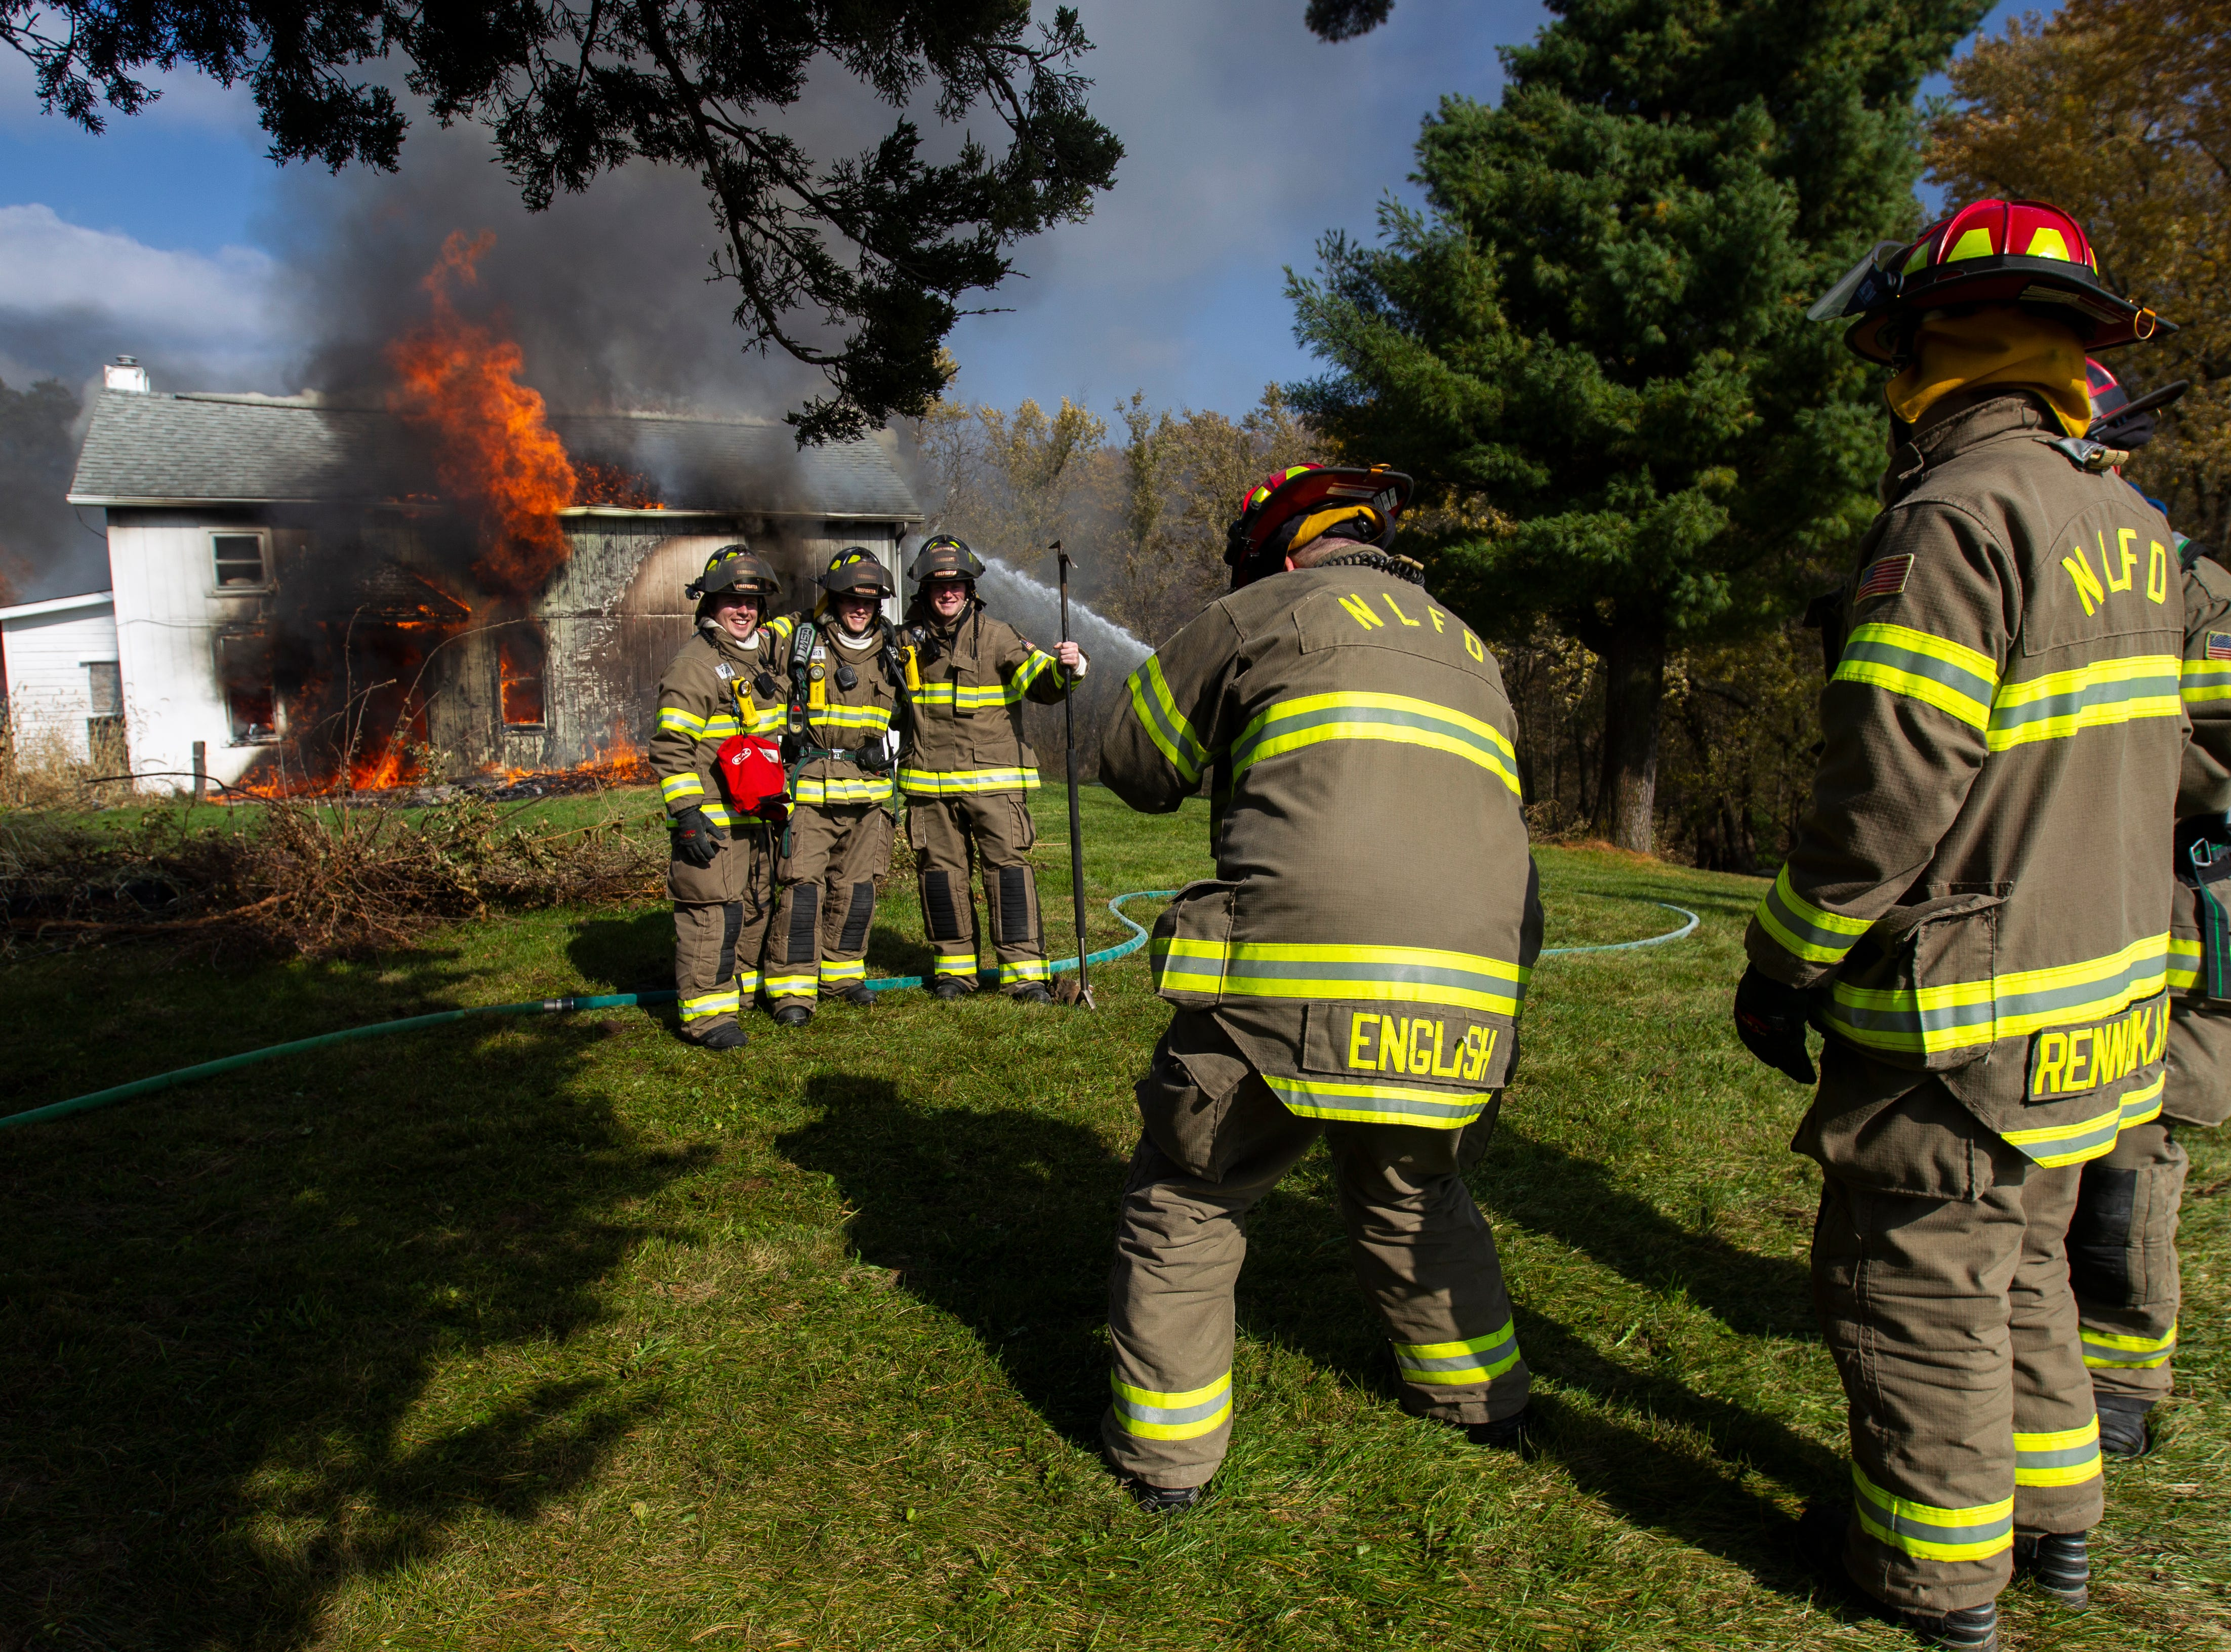 North Liberty Fire Department volunteer Joseph English takes a photo during a controlled burn fire training exercise of a farm house on Saturday, Oct. 27, 2018, on the east side of Liberty High School in North Liberty.